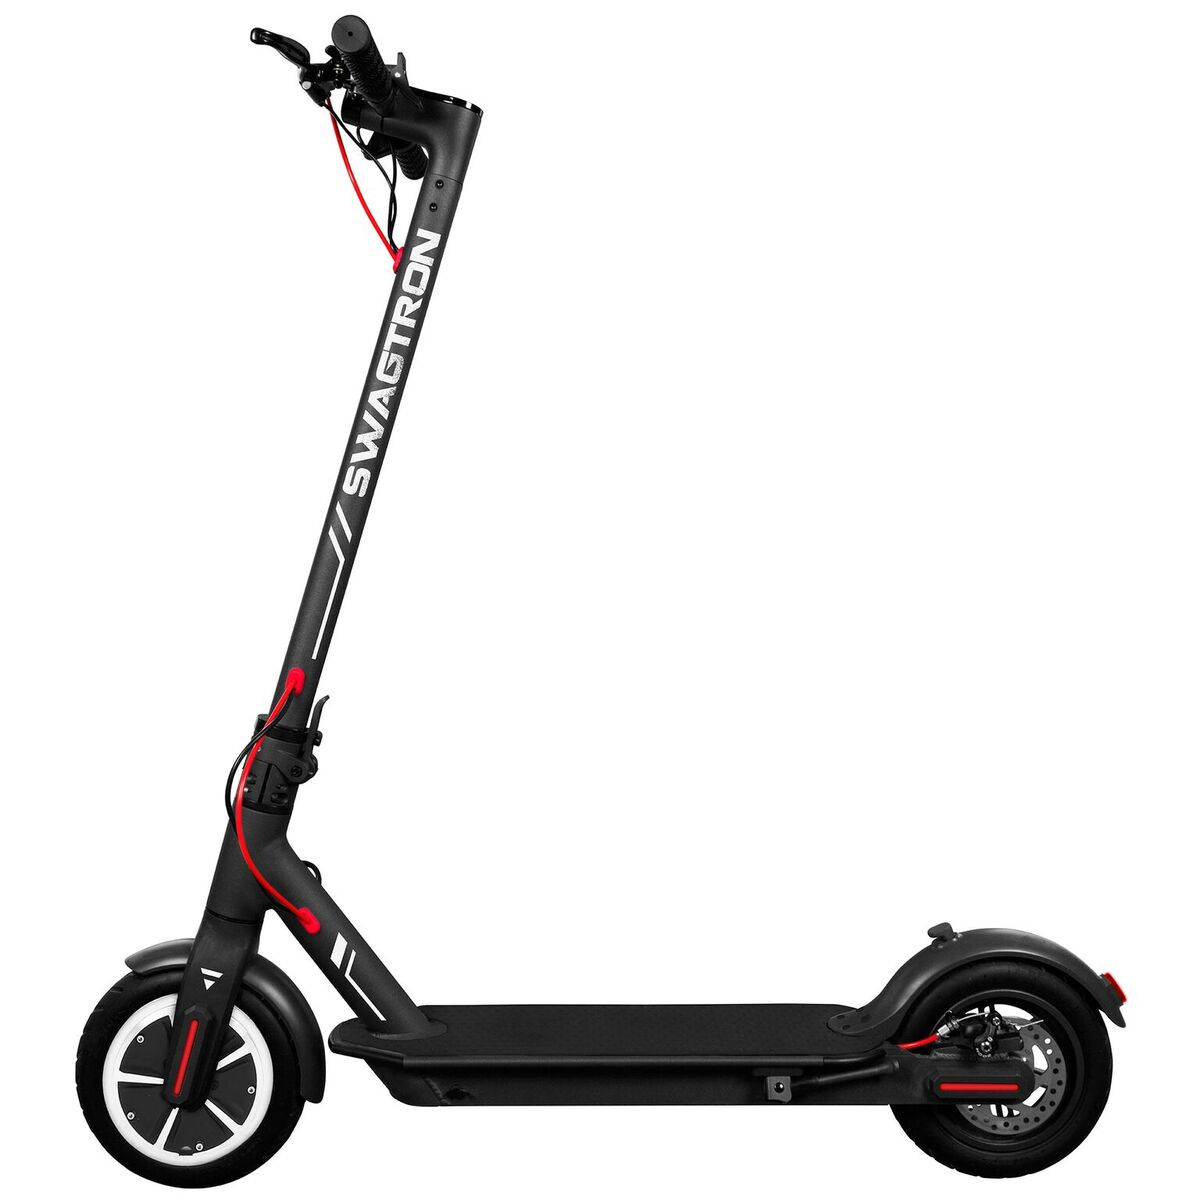 Folding Electric Scooter >> Swagtron Electric Scooter City Commuter Swagger 5 Elite